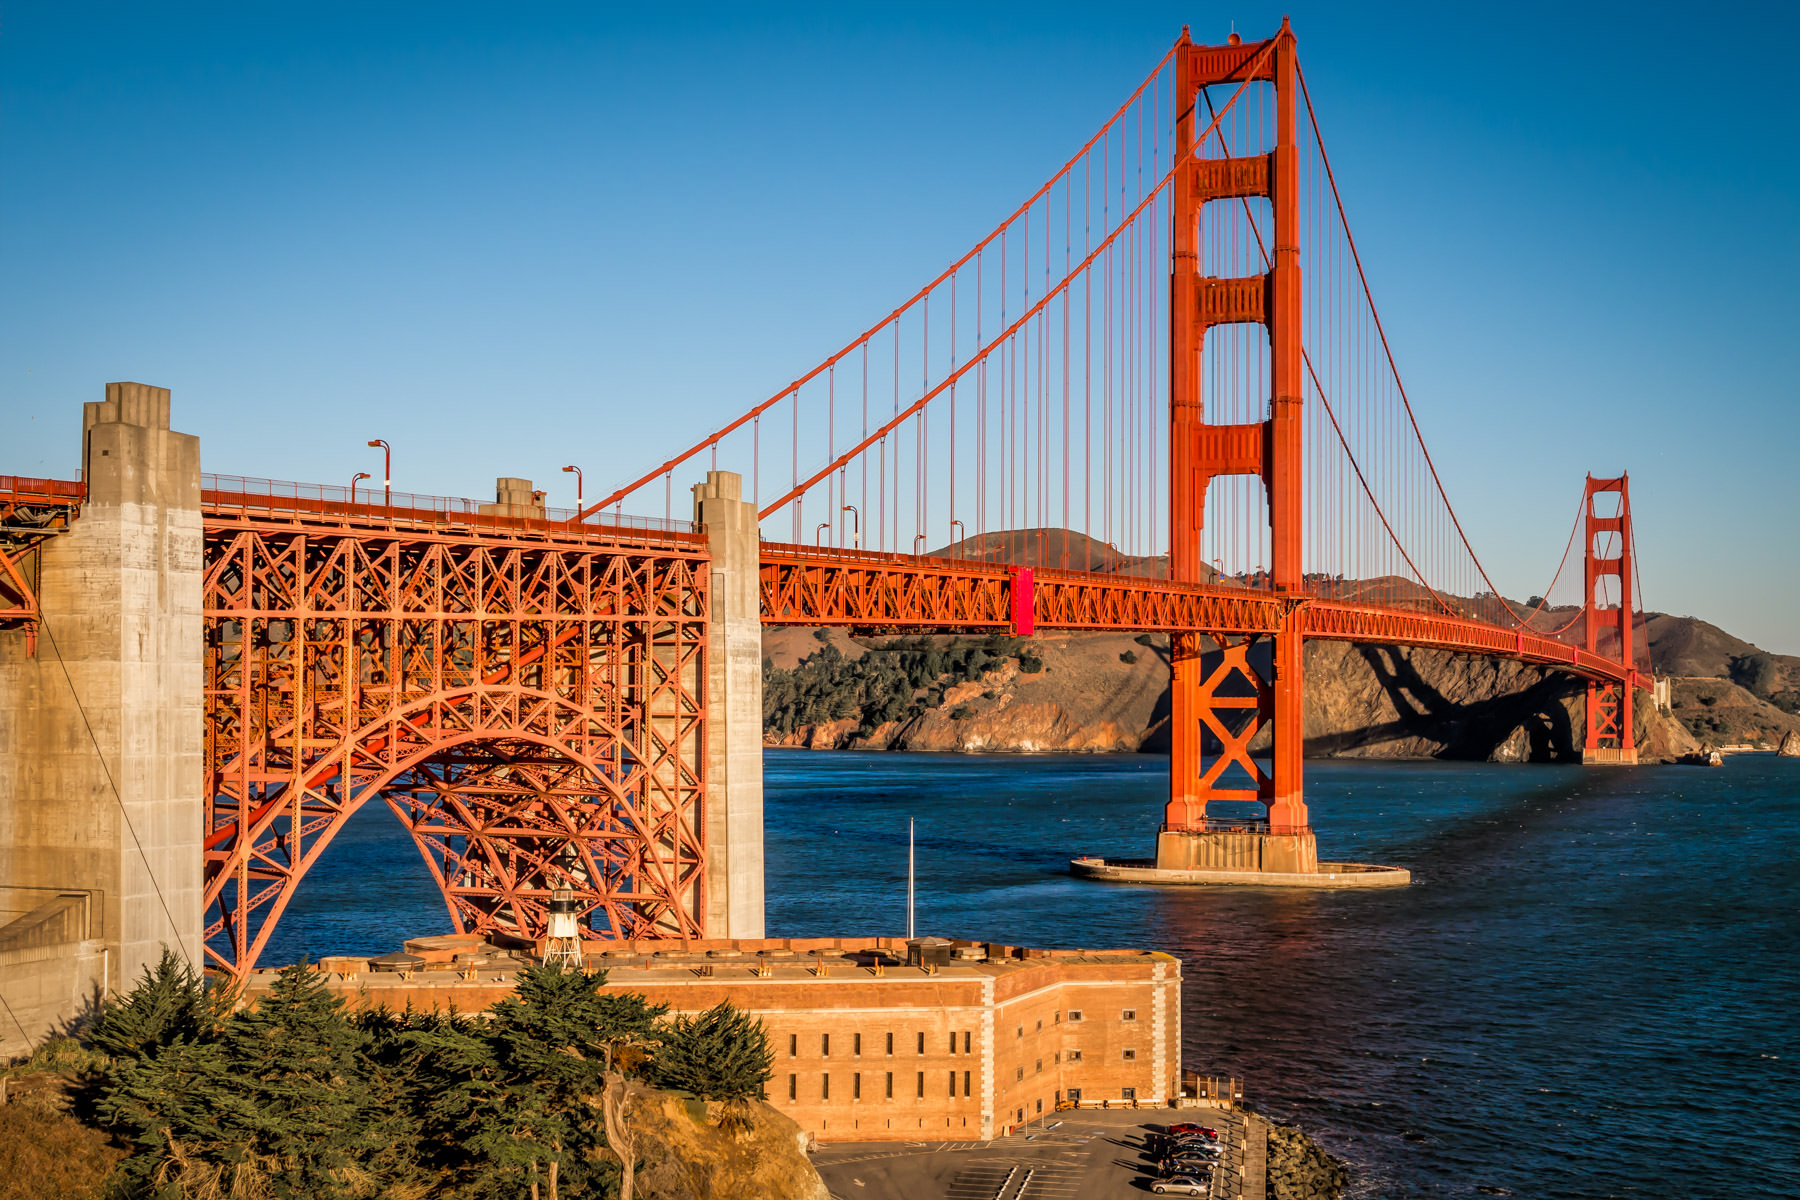 San Francisco's iconic Golden Gate Bridge arches over the historic Civil War-era Fort Point at the entrance to San Francisco Bay.